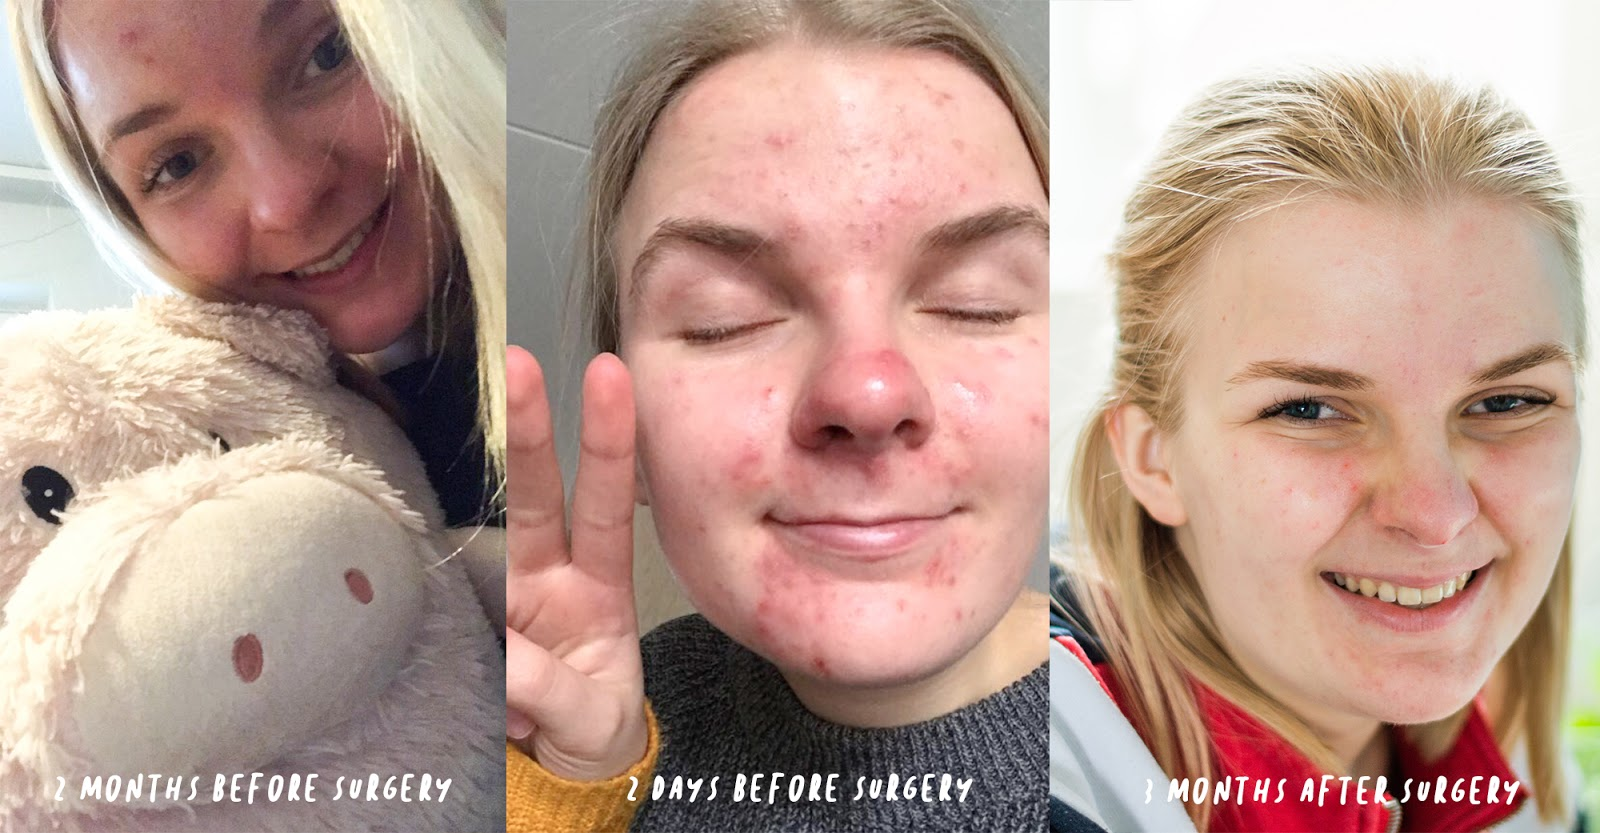 SKINCARE ROUTINE CYSTIC ACNE OVARIAN CYST REMOVAL SURGERY BY ANNA TWENTY SEVEN